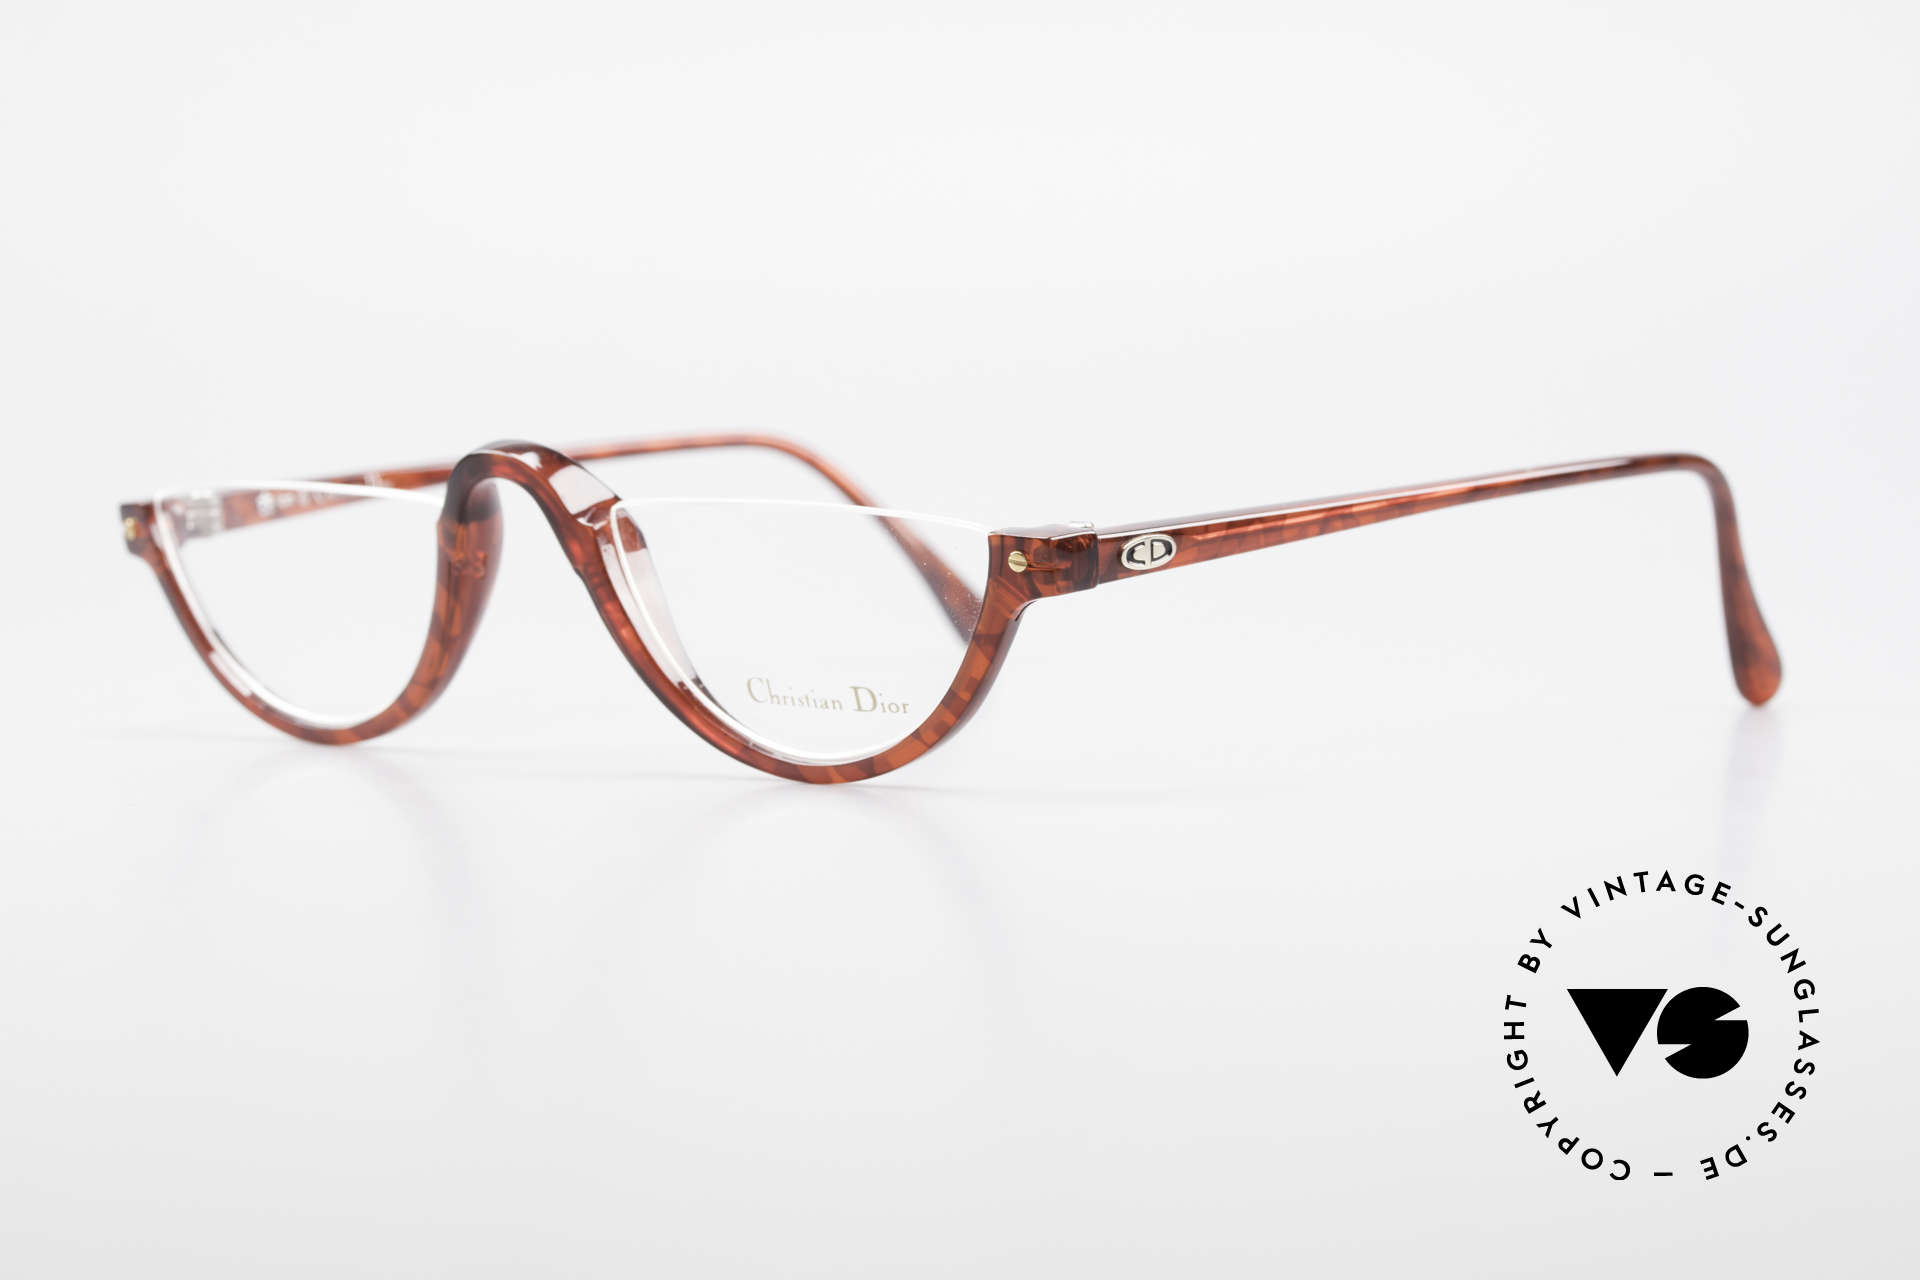 Christian Dior 2586 Reading Glasses Unisex 90's, superior quality, fine materials & durability by Optyl, Made for Men and Women